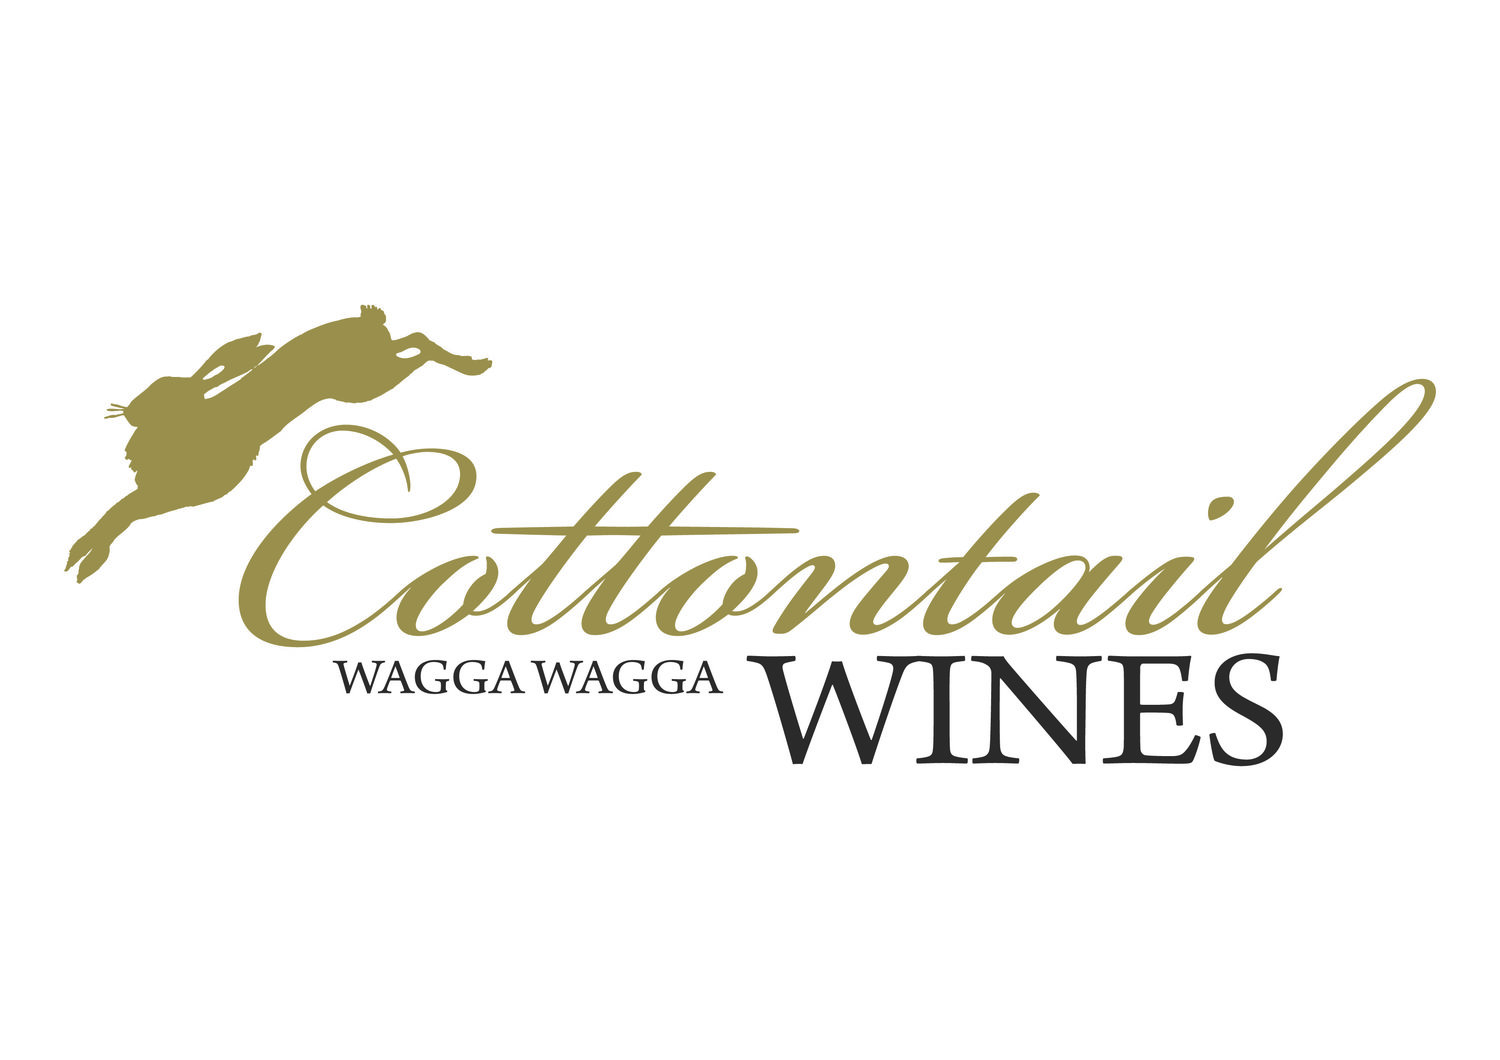 Cottontails Restaurant & Winery Wagga Wagga